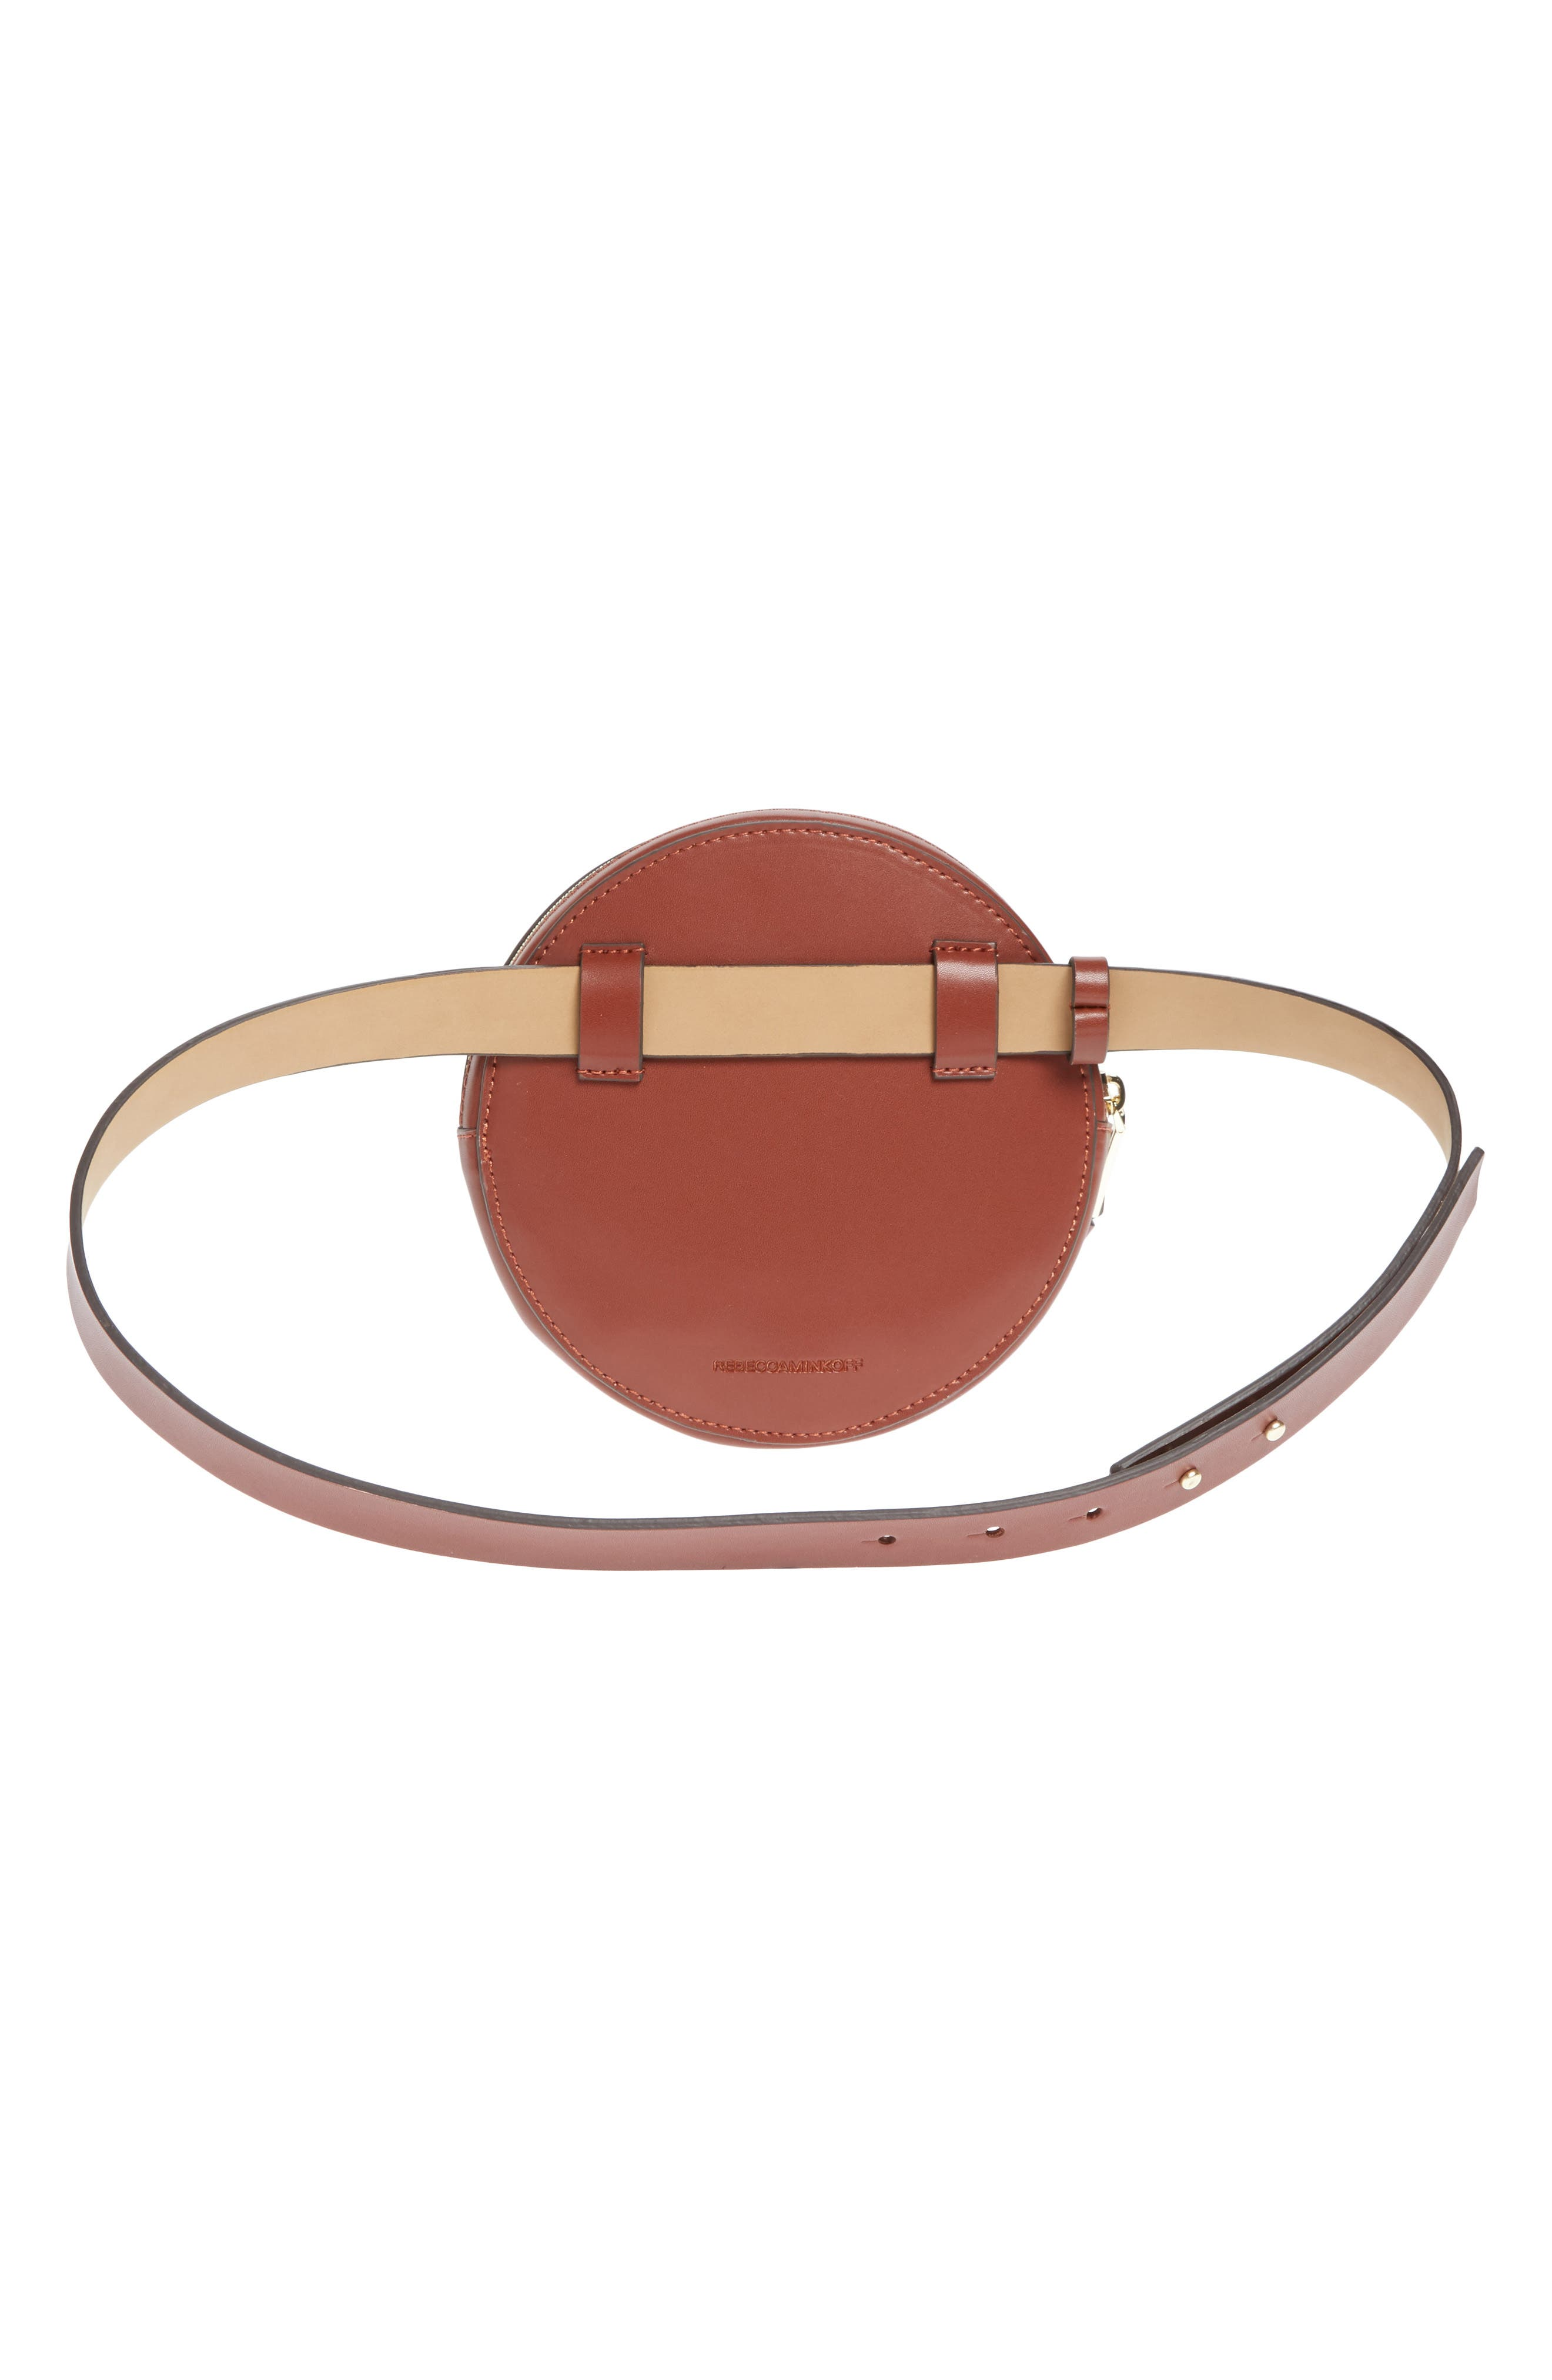 Lucy Leather Belt Bag,                             Alternate thumbnail 3, color,                             LUGGAGE